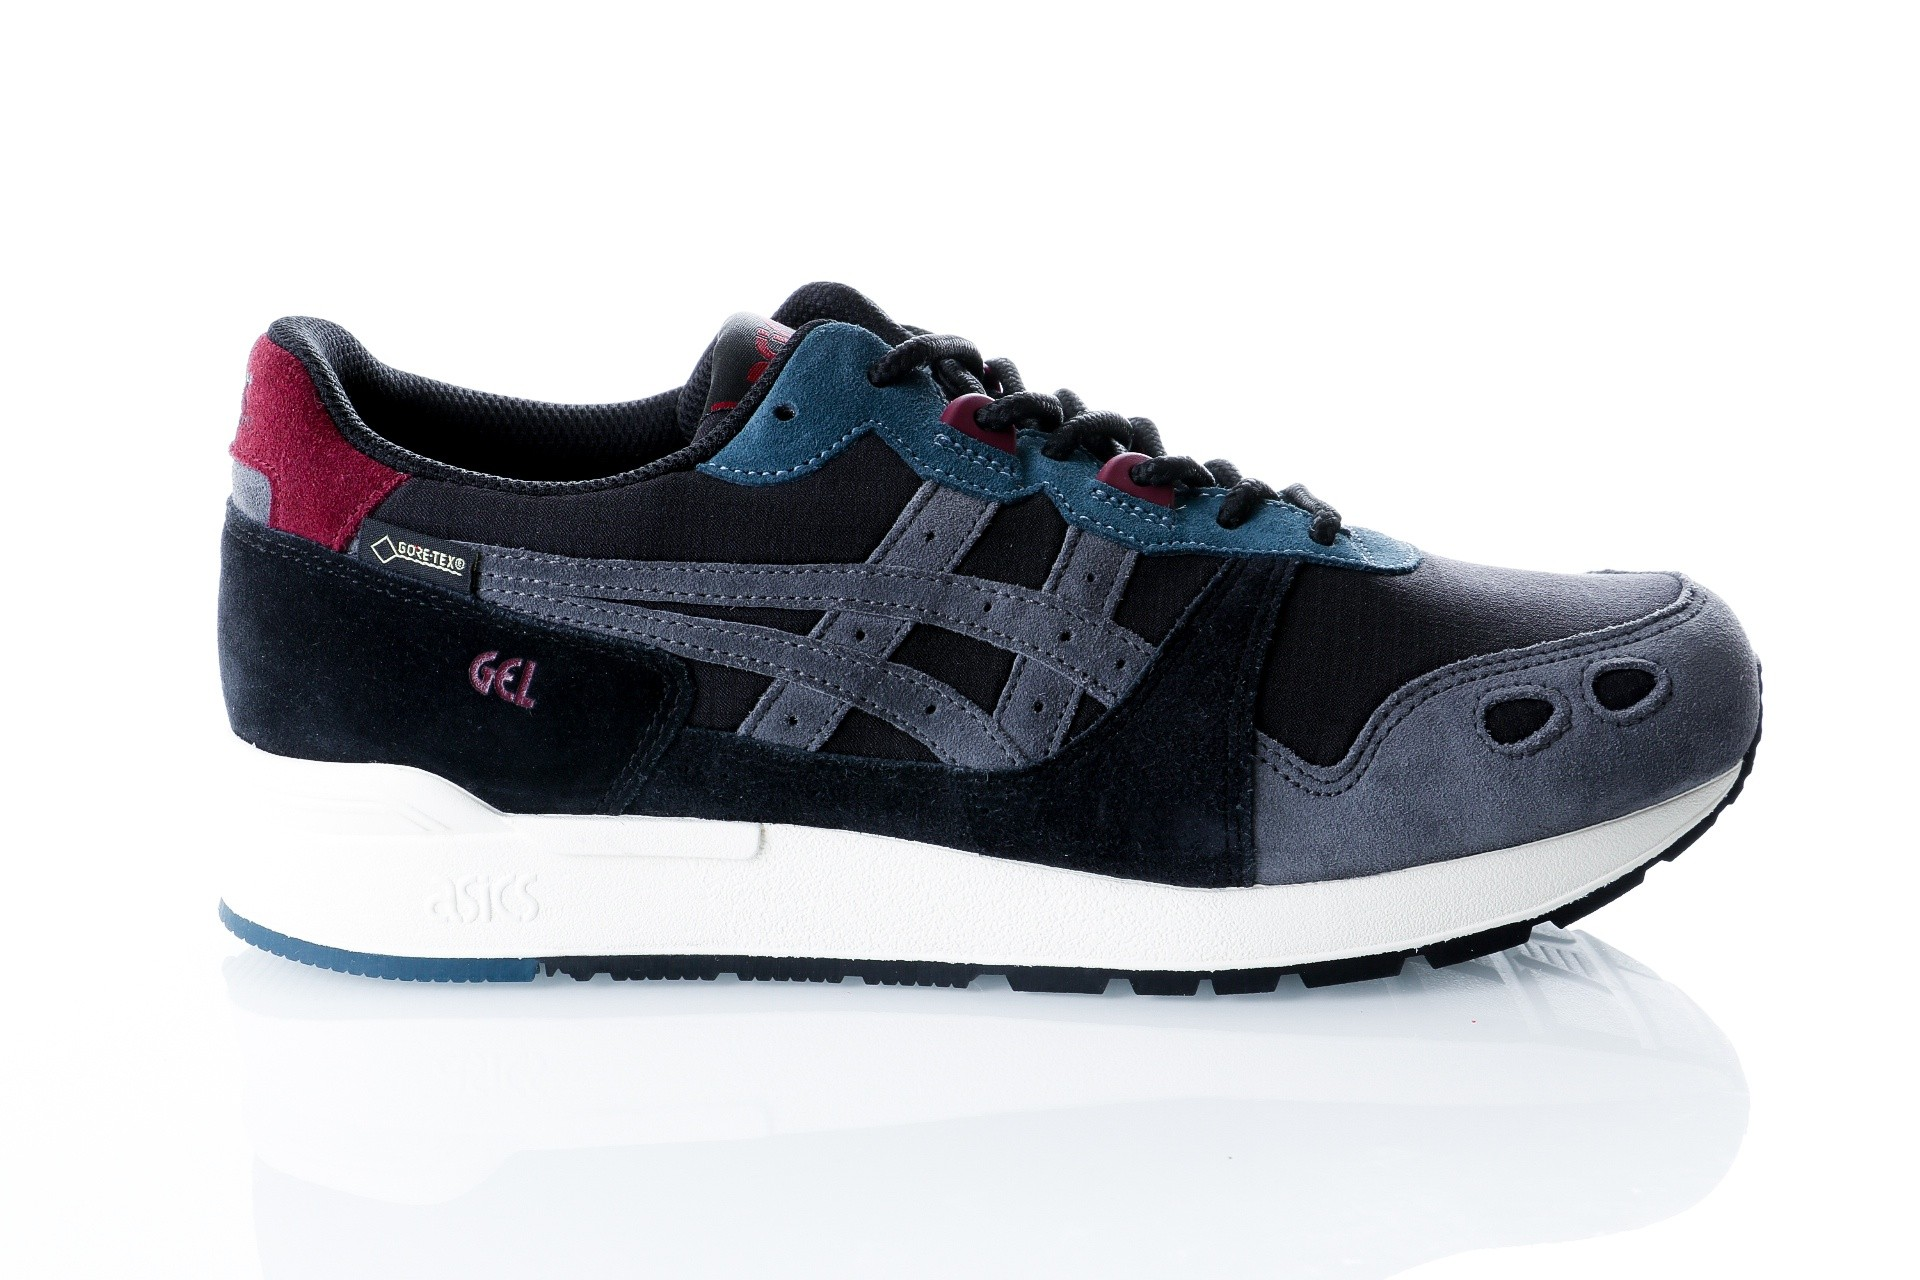 Foto van Asics GEL-LYTE G-TX 1193A038 Sneakers BLACK/DARK GREY